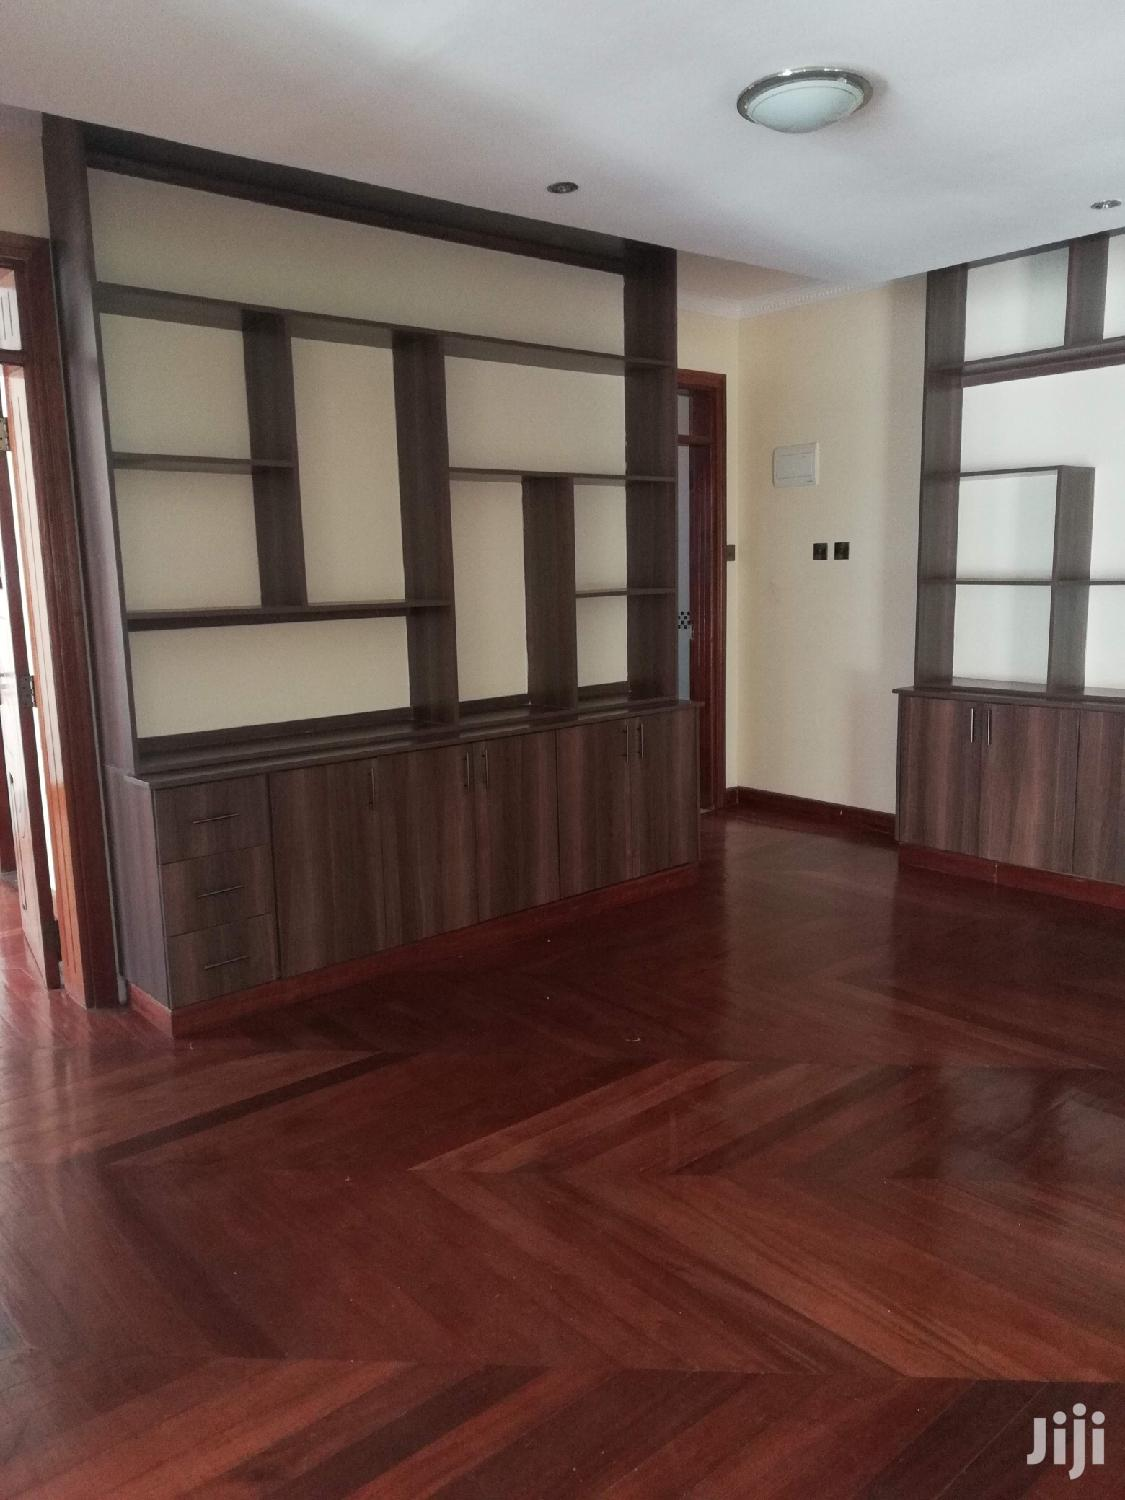 Property World,5br+Dsq Townhse All Ensuite,Garden And Secure | Houses & Apartments For Rent for sale in Lavington, Nairobi, Kenya